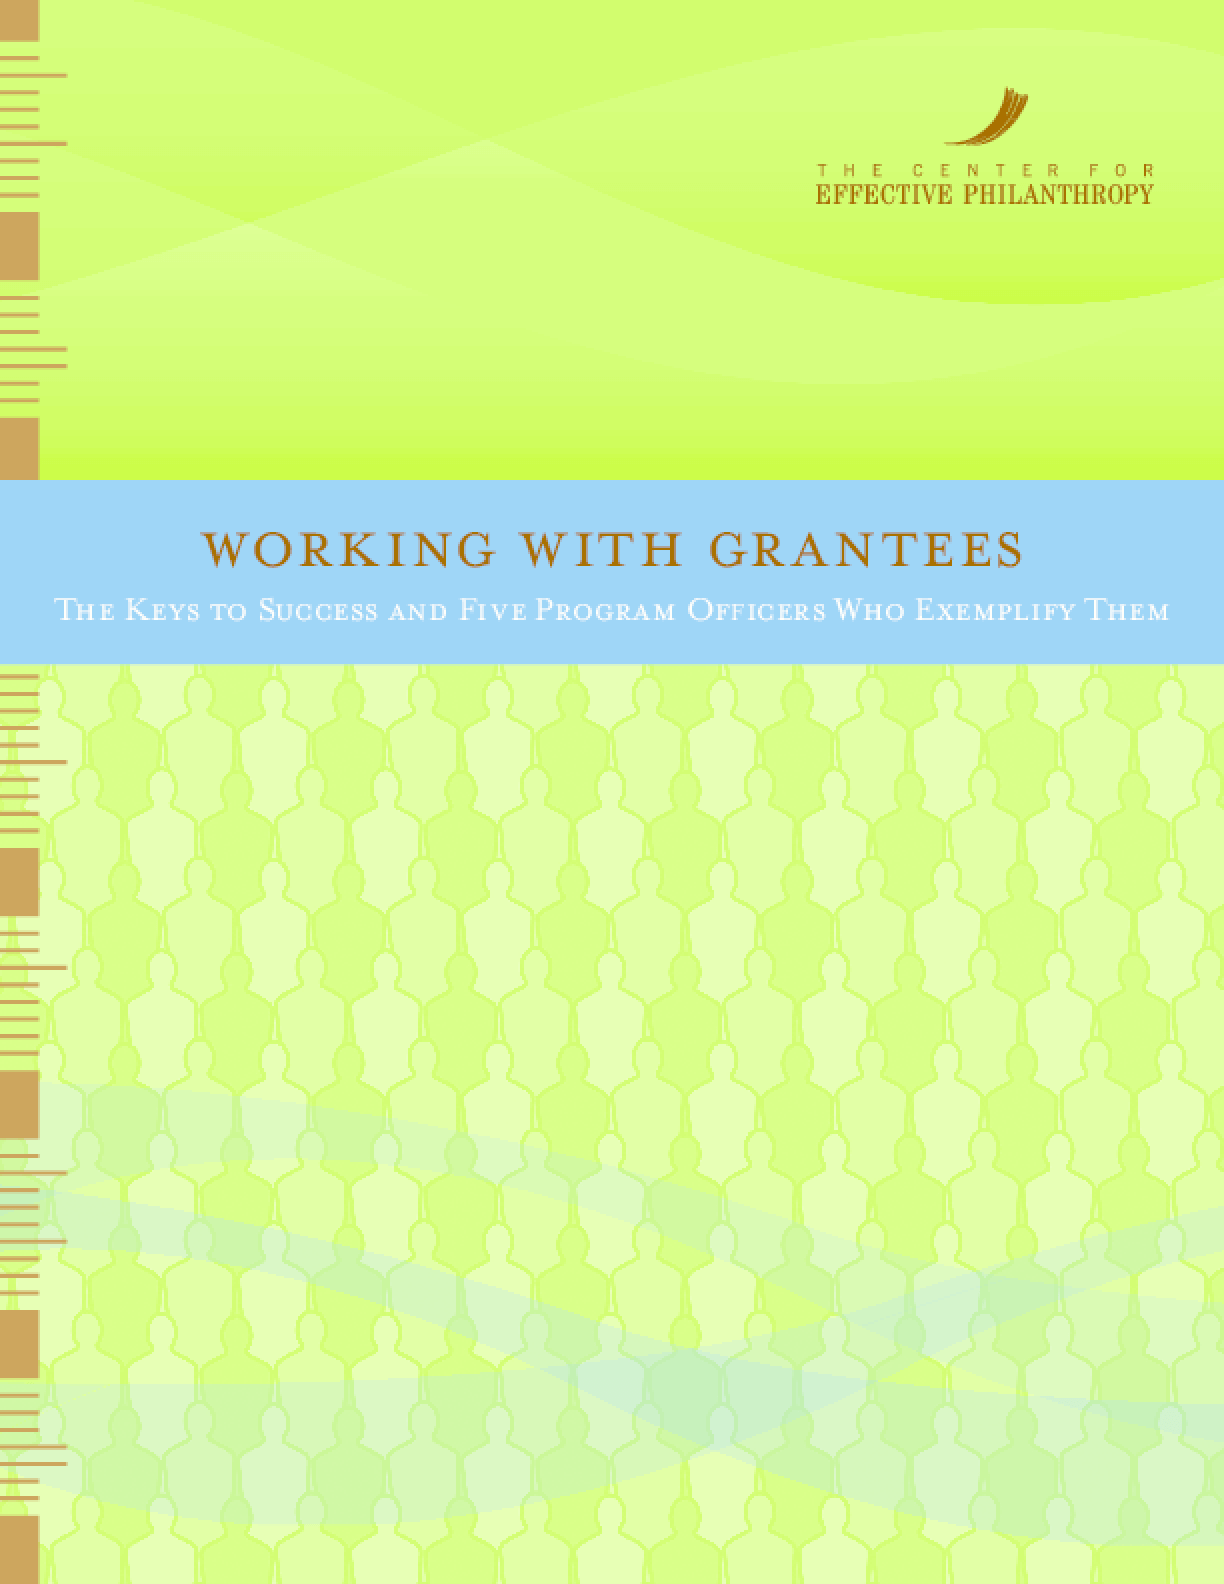 Working with Grantees: The Keys to Success and Five Program Officers Who Exemplify Them